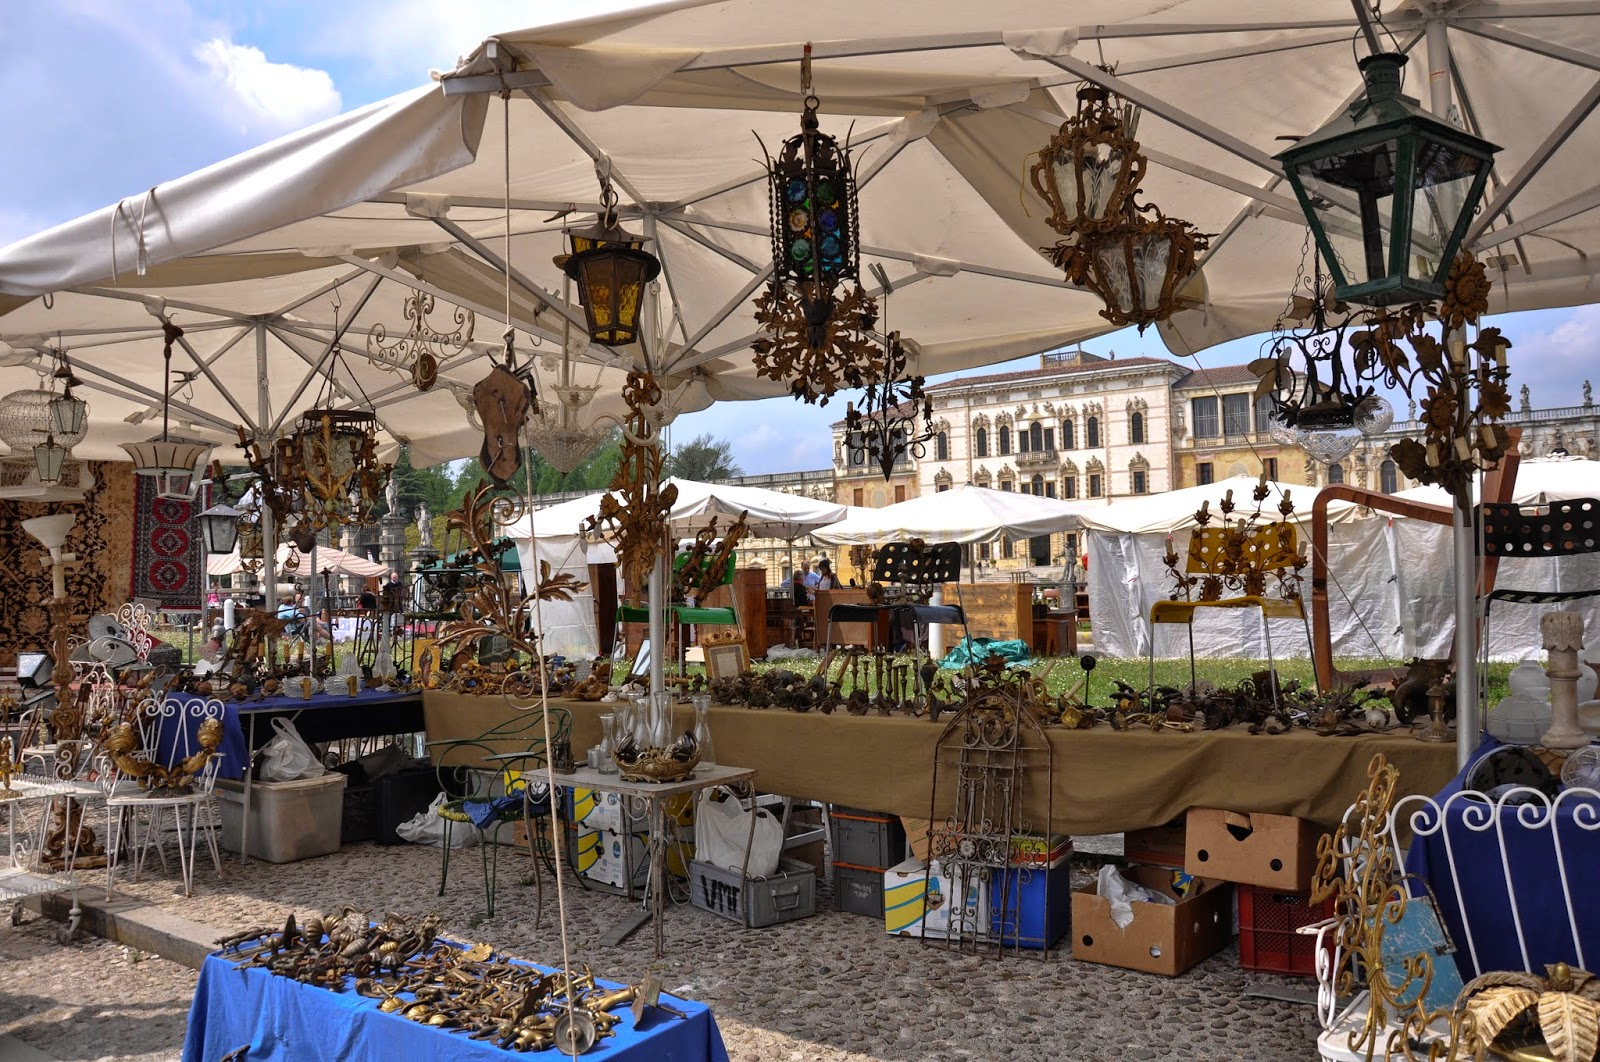 Stall with lights at the antiques market in Piazzola sul Brenta, Veneto, Italy